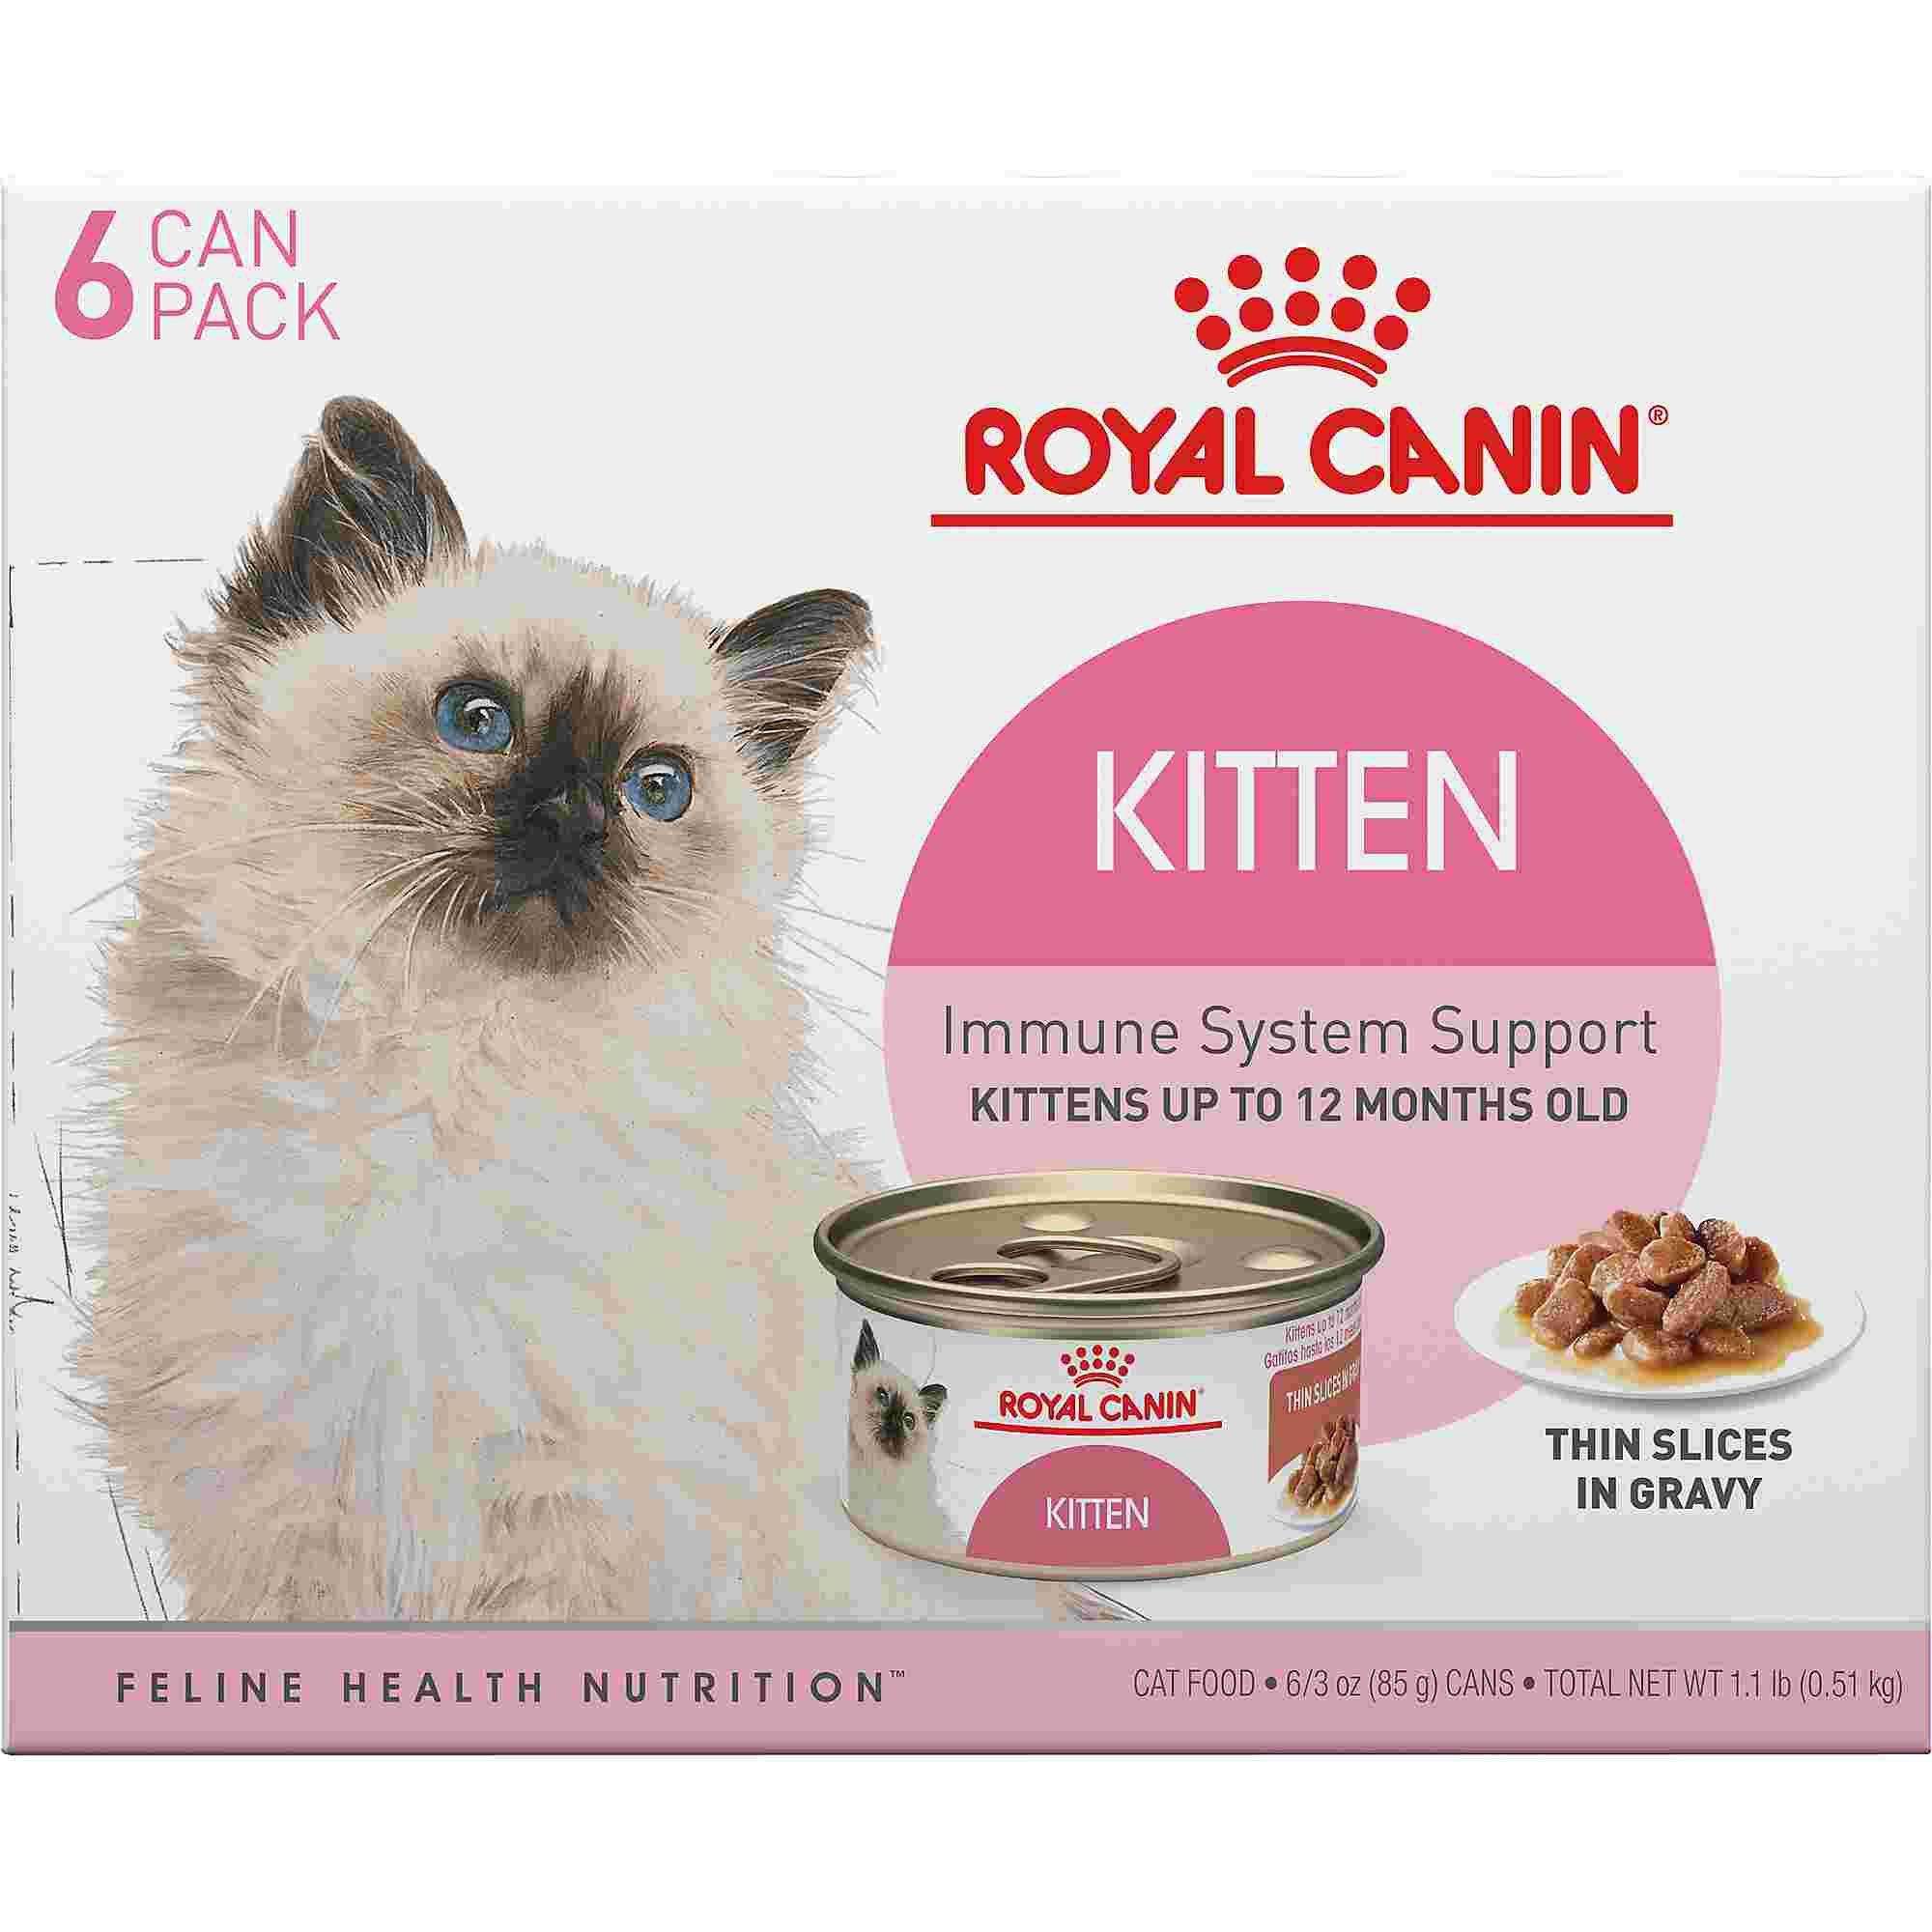 Royal Canin Feline Health Nutrition Thin Slices In Gravy Variety Pack Wet Kitten Food 3 Oz Count Of 6 Petco Feline Health Kitten Food Health And Nutrition